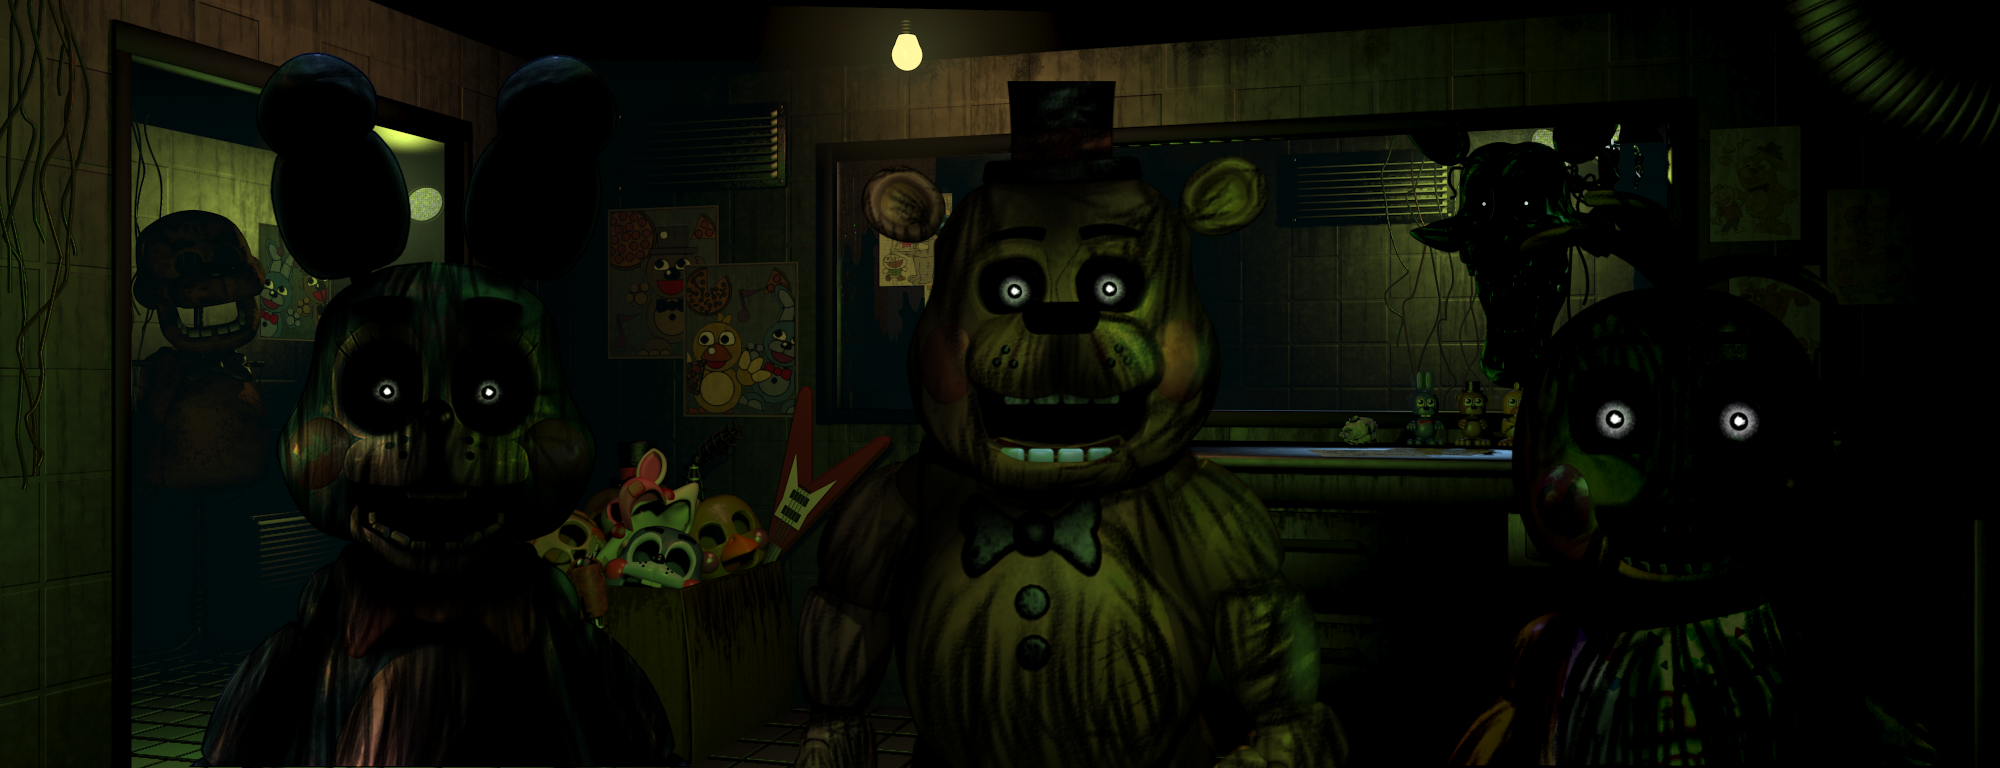 Five nights at freddy s 3 by christian2099 on deviantart